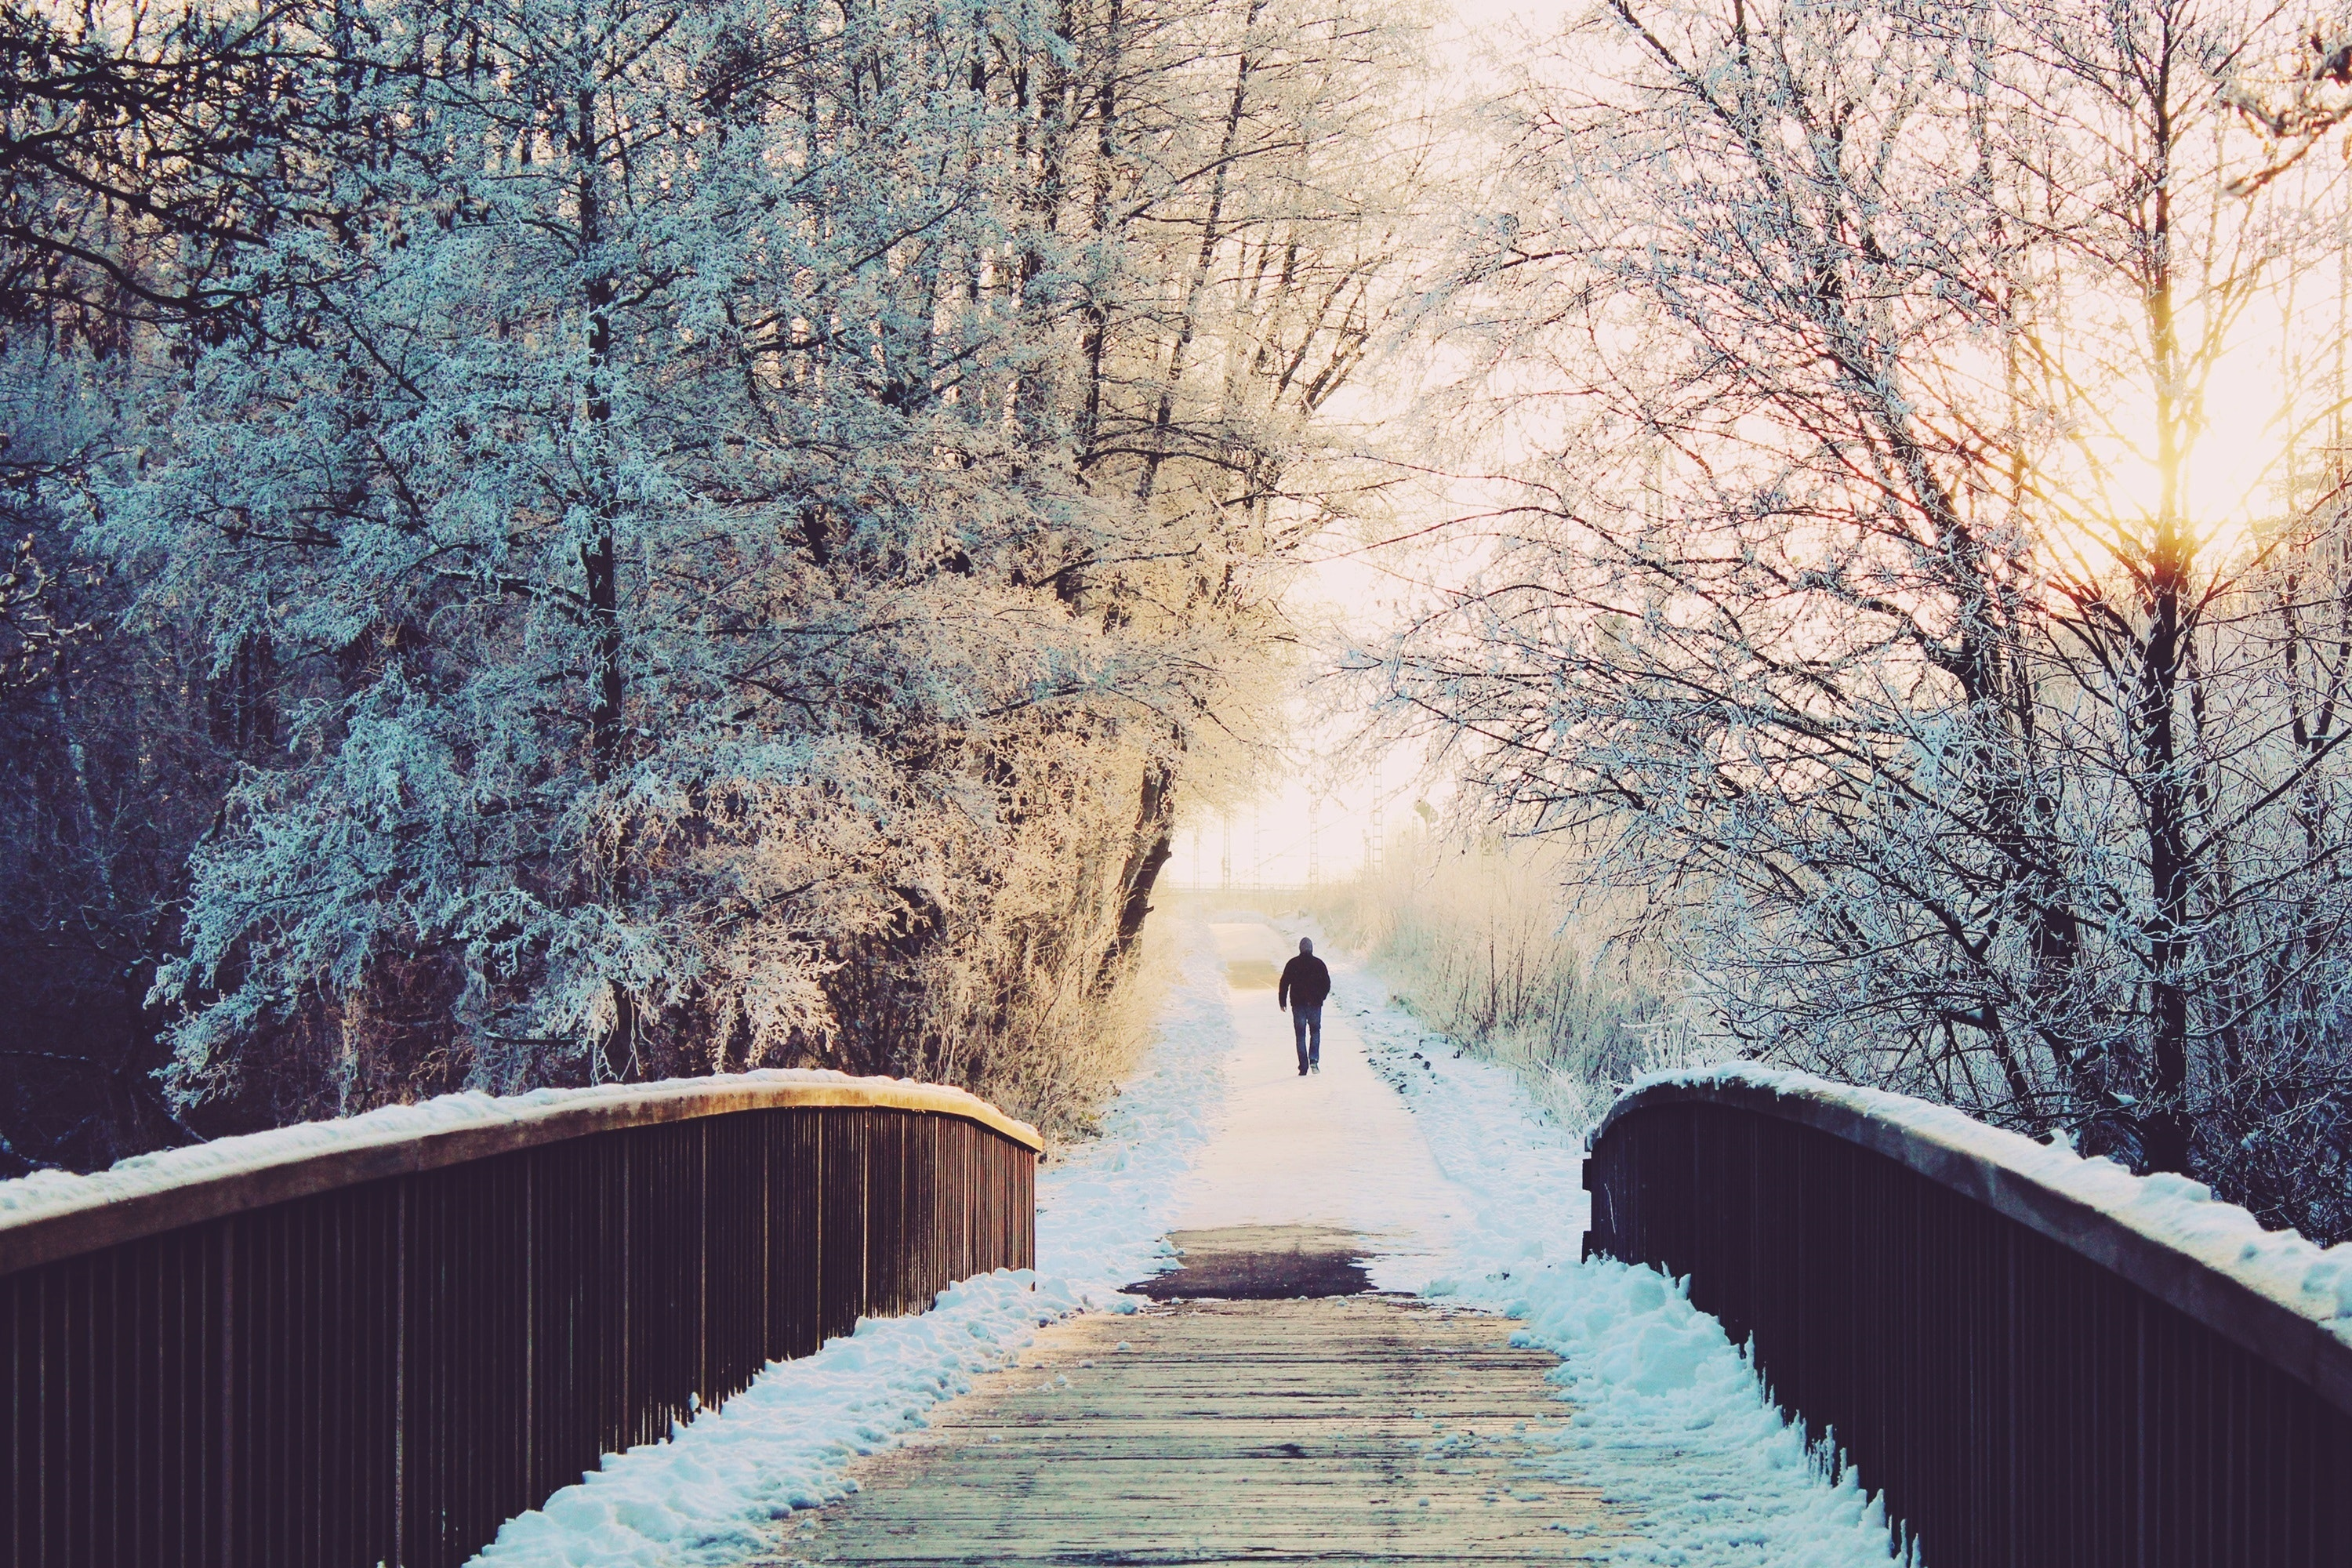 Man Walking Beyond Bridge · Free Stock Photo